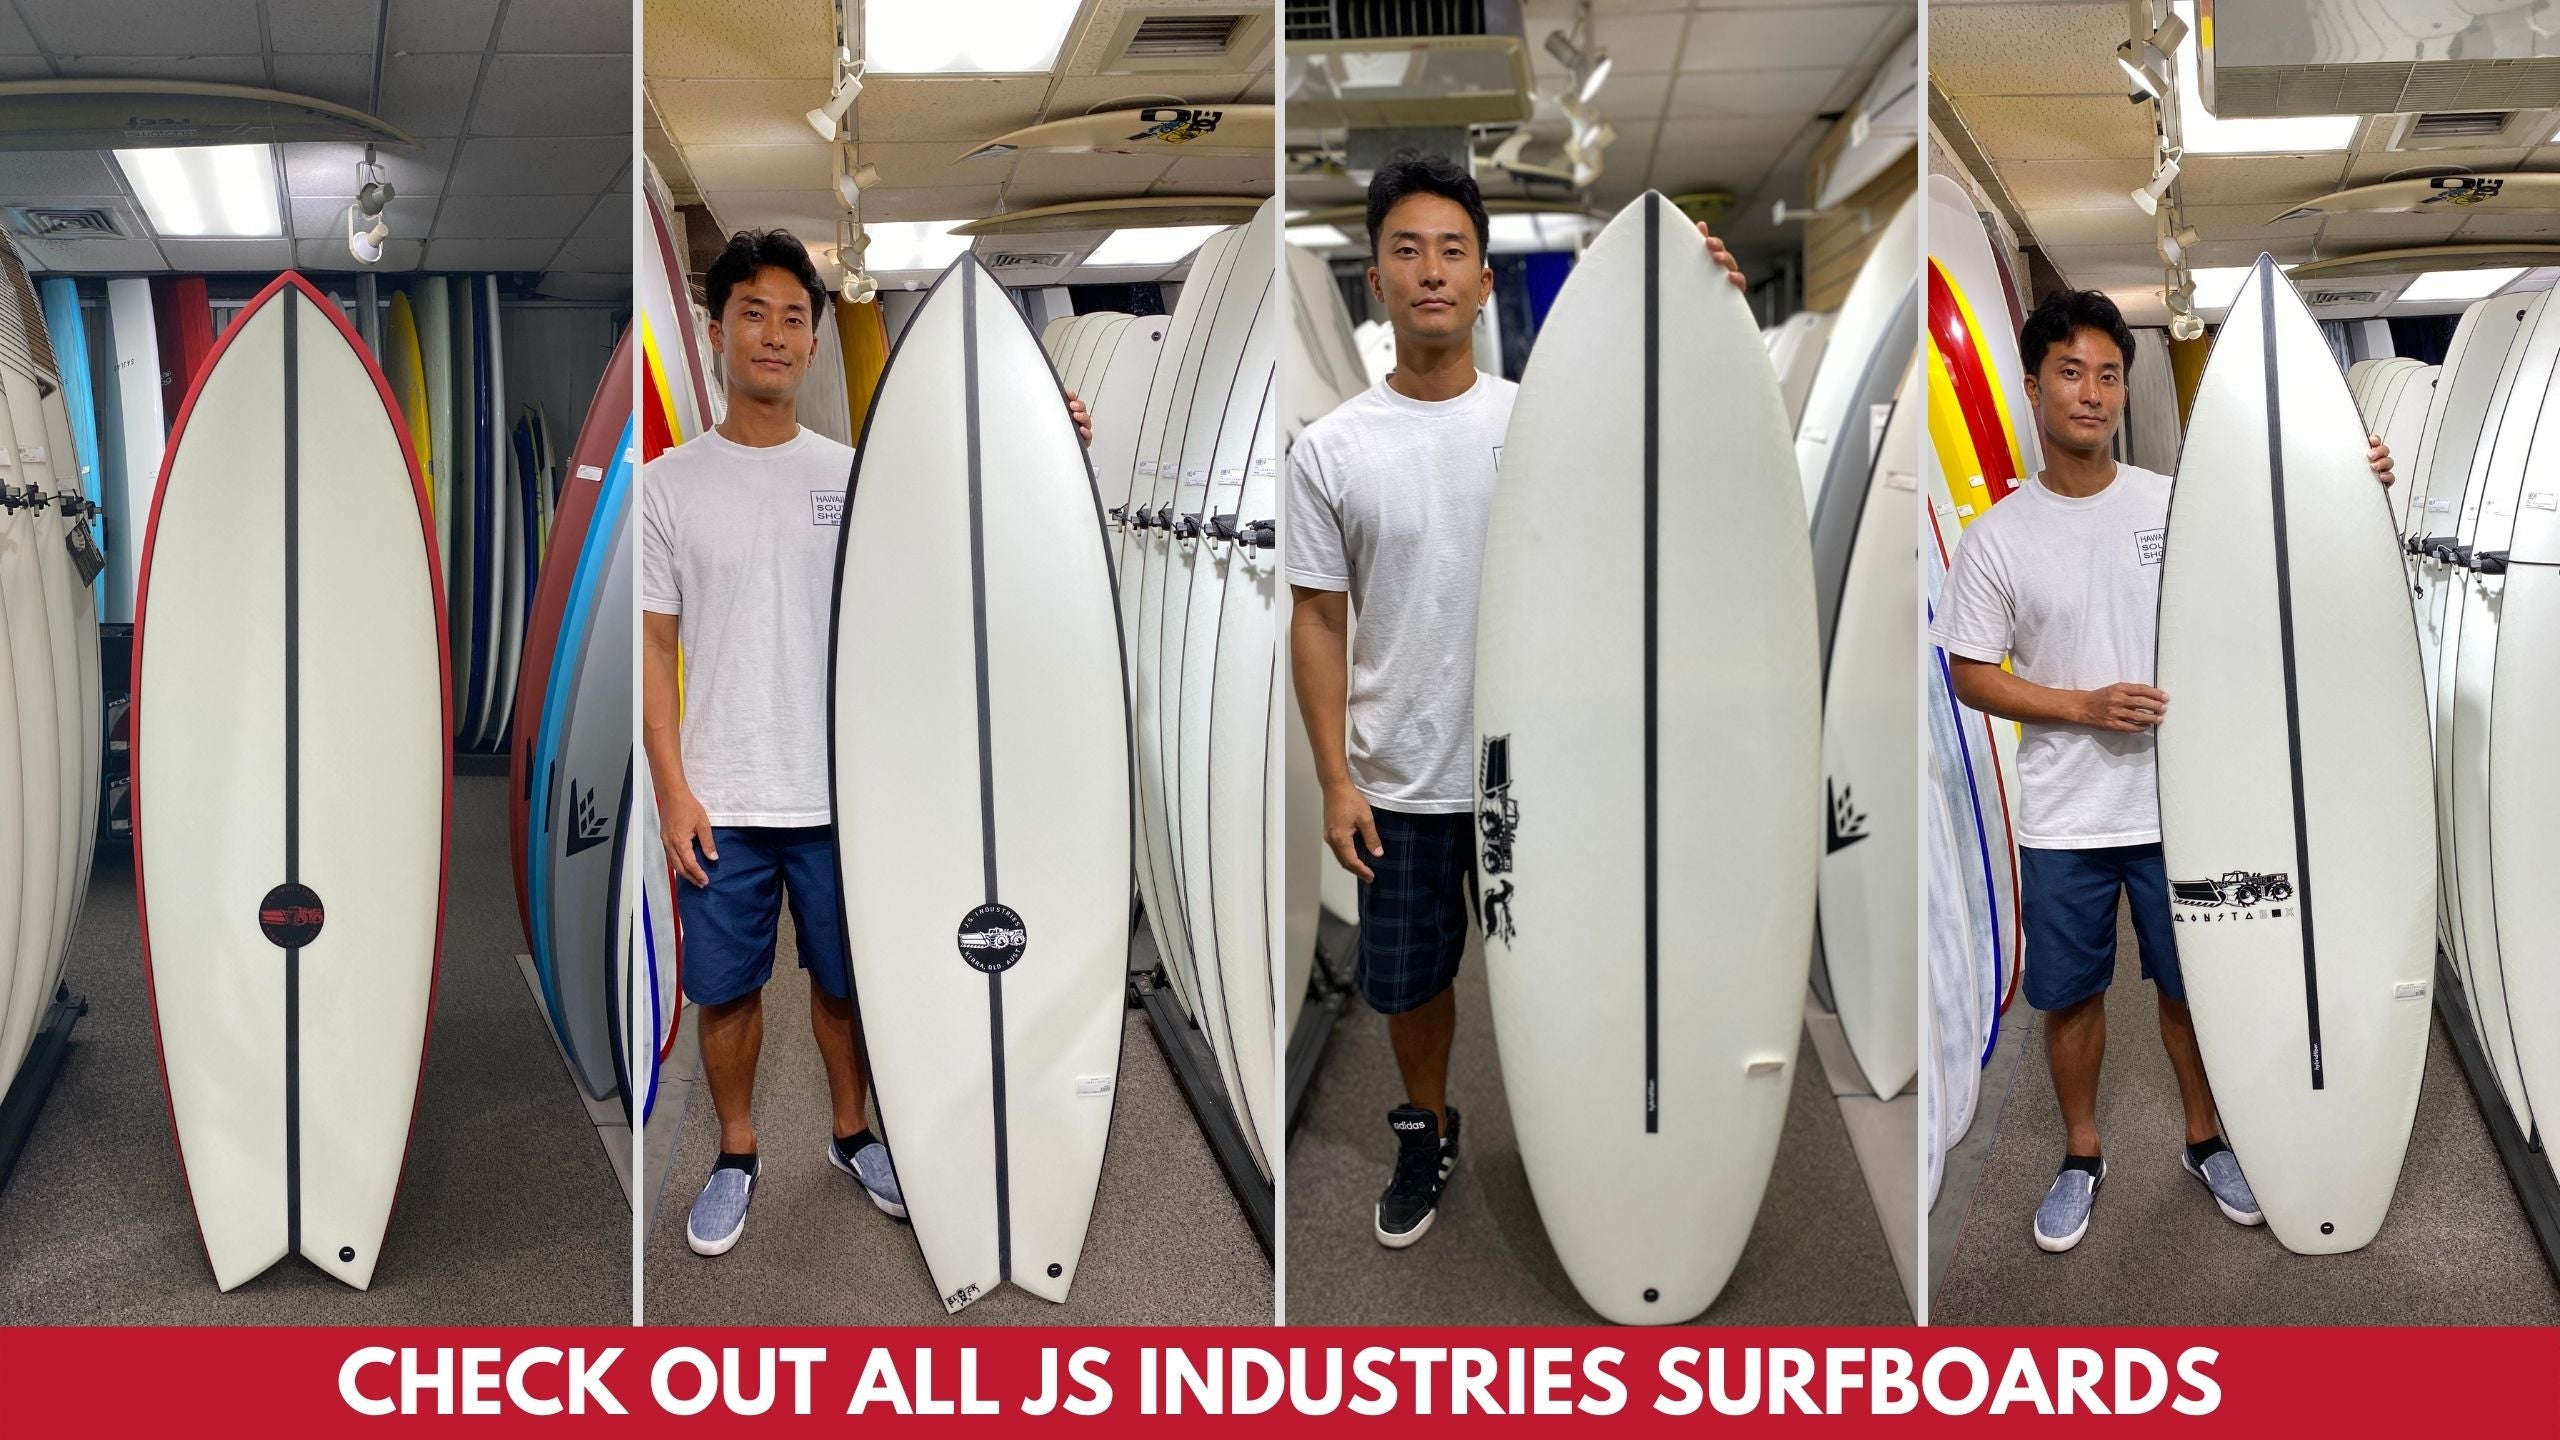 JS INDUSTRIES SURFBOARDS